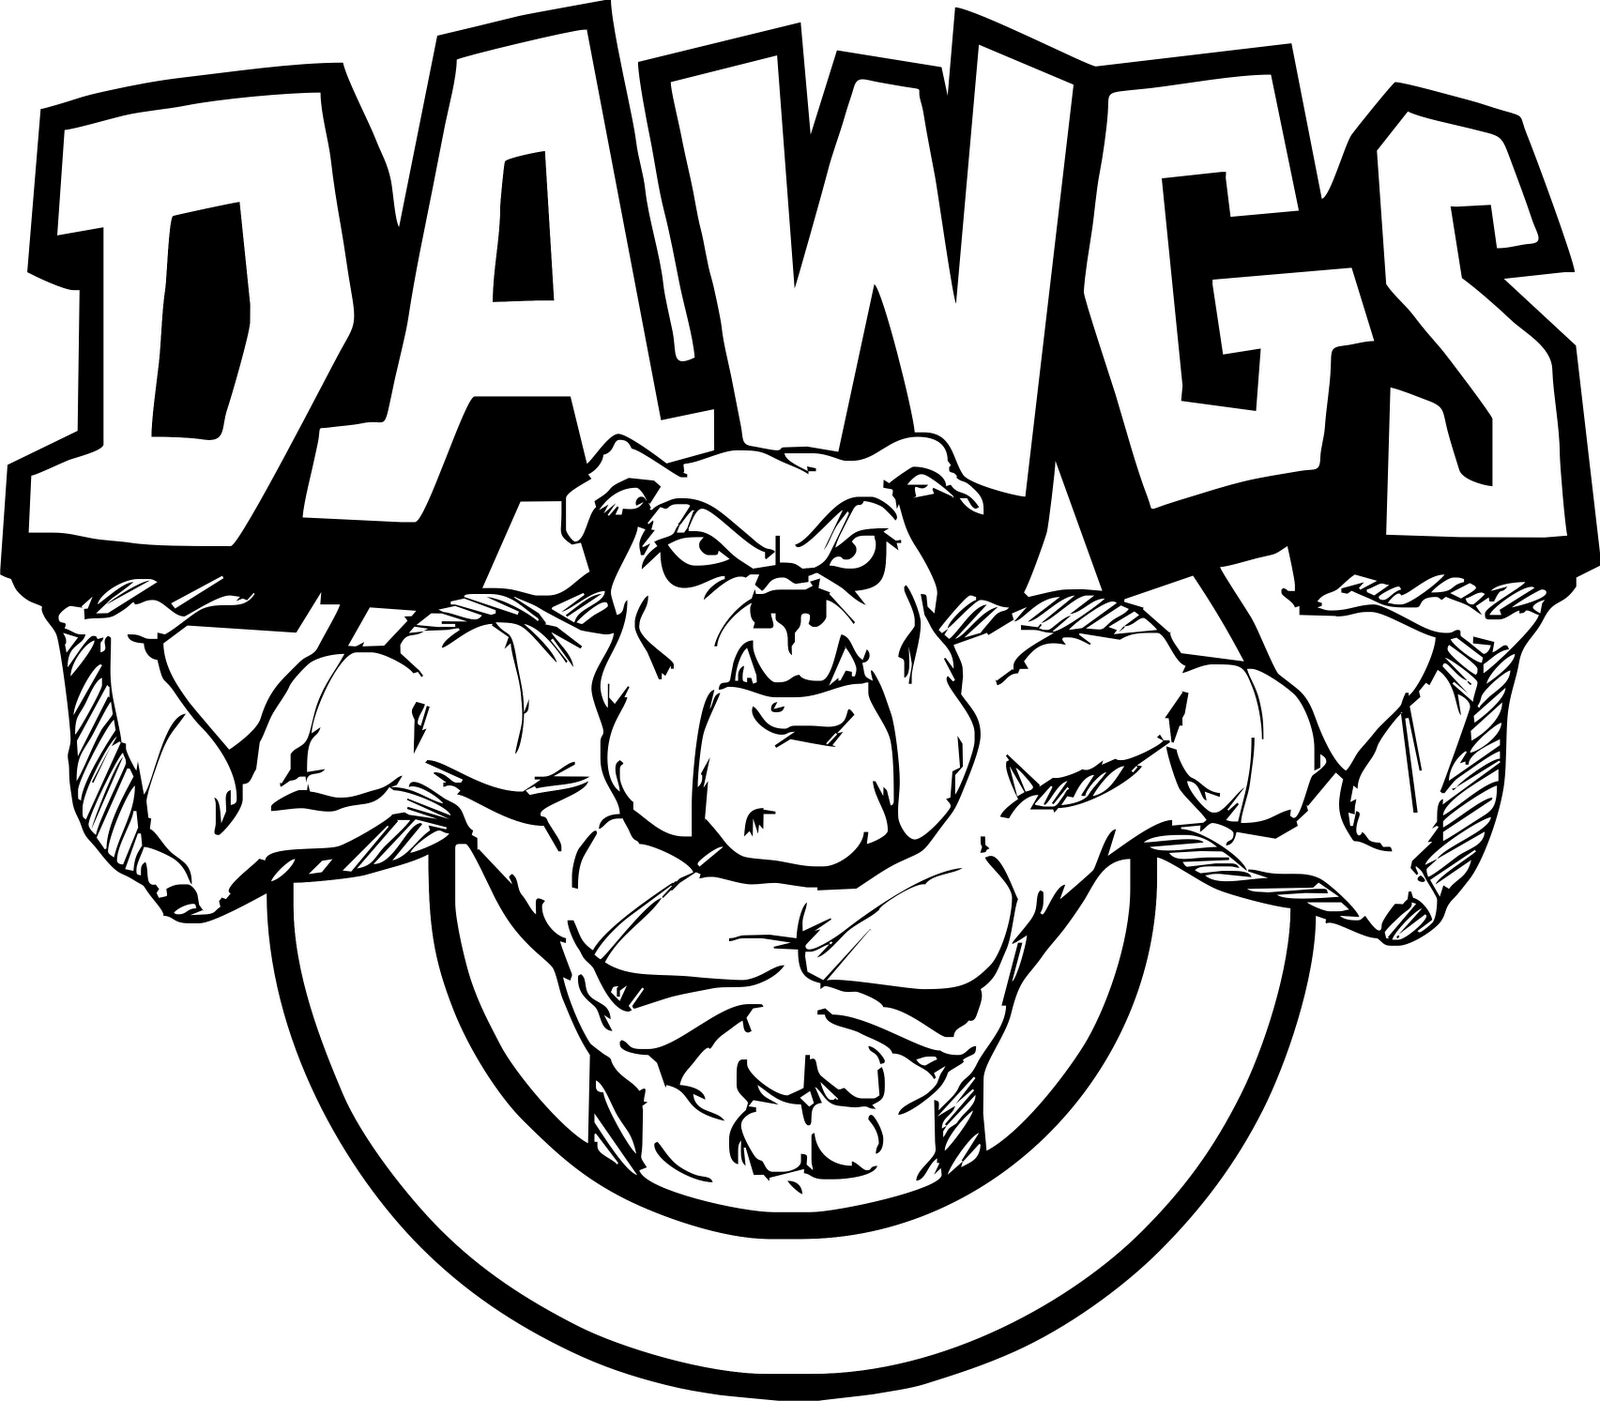 539165386610833426 on georgia bulldogs football logo